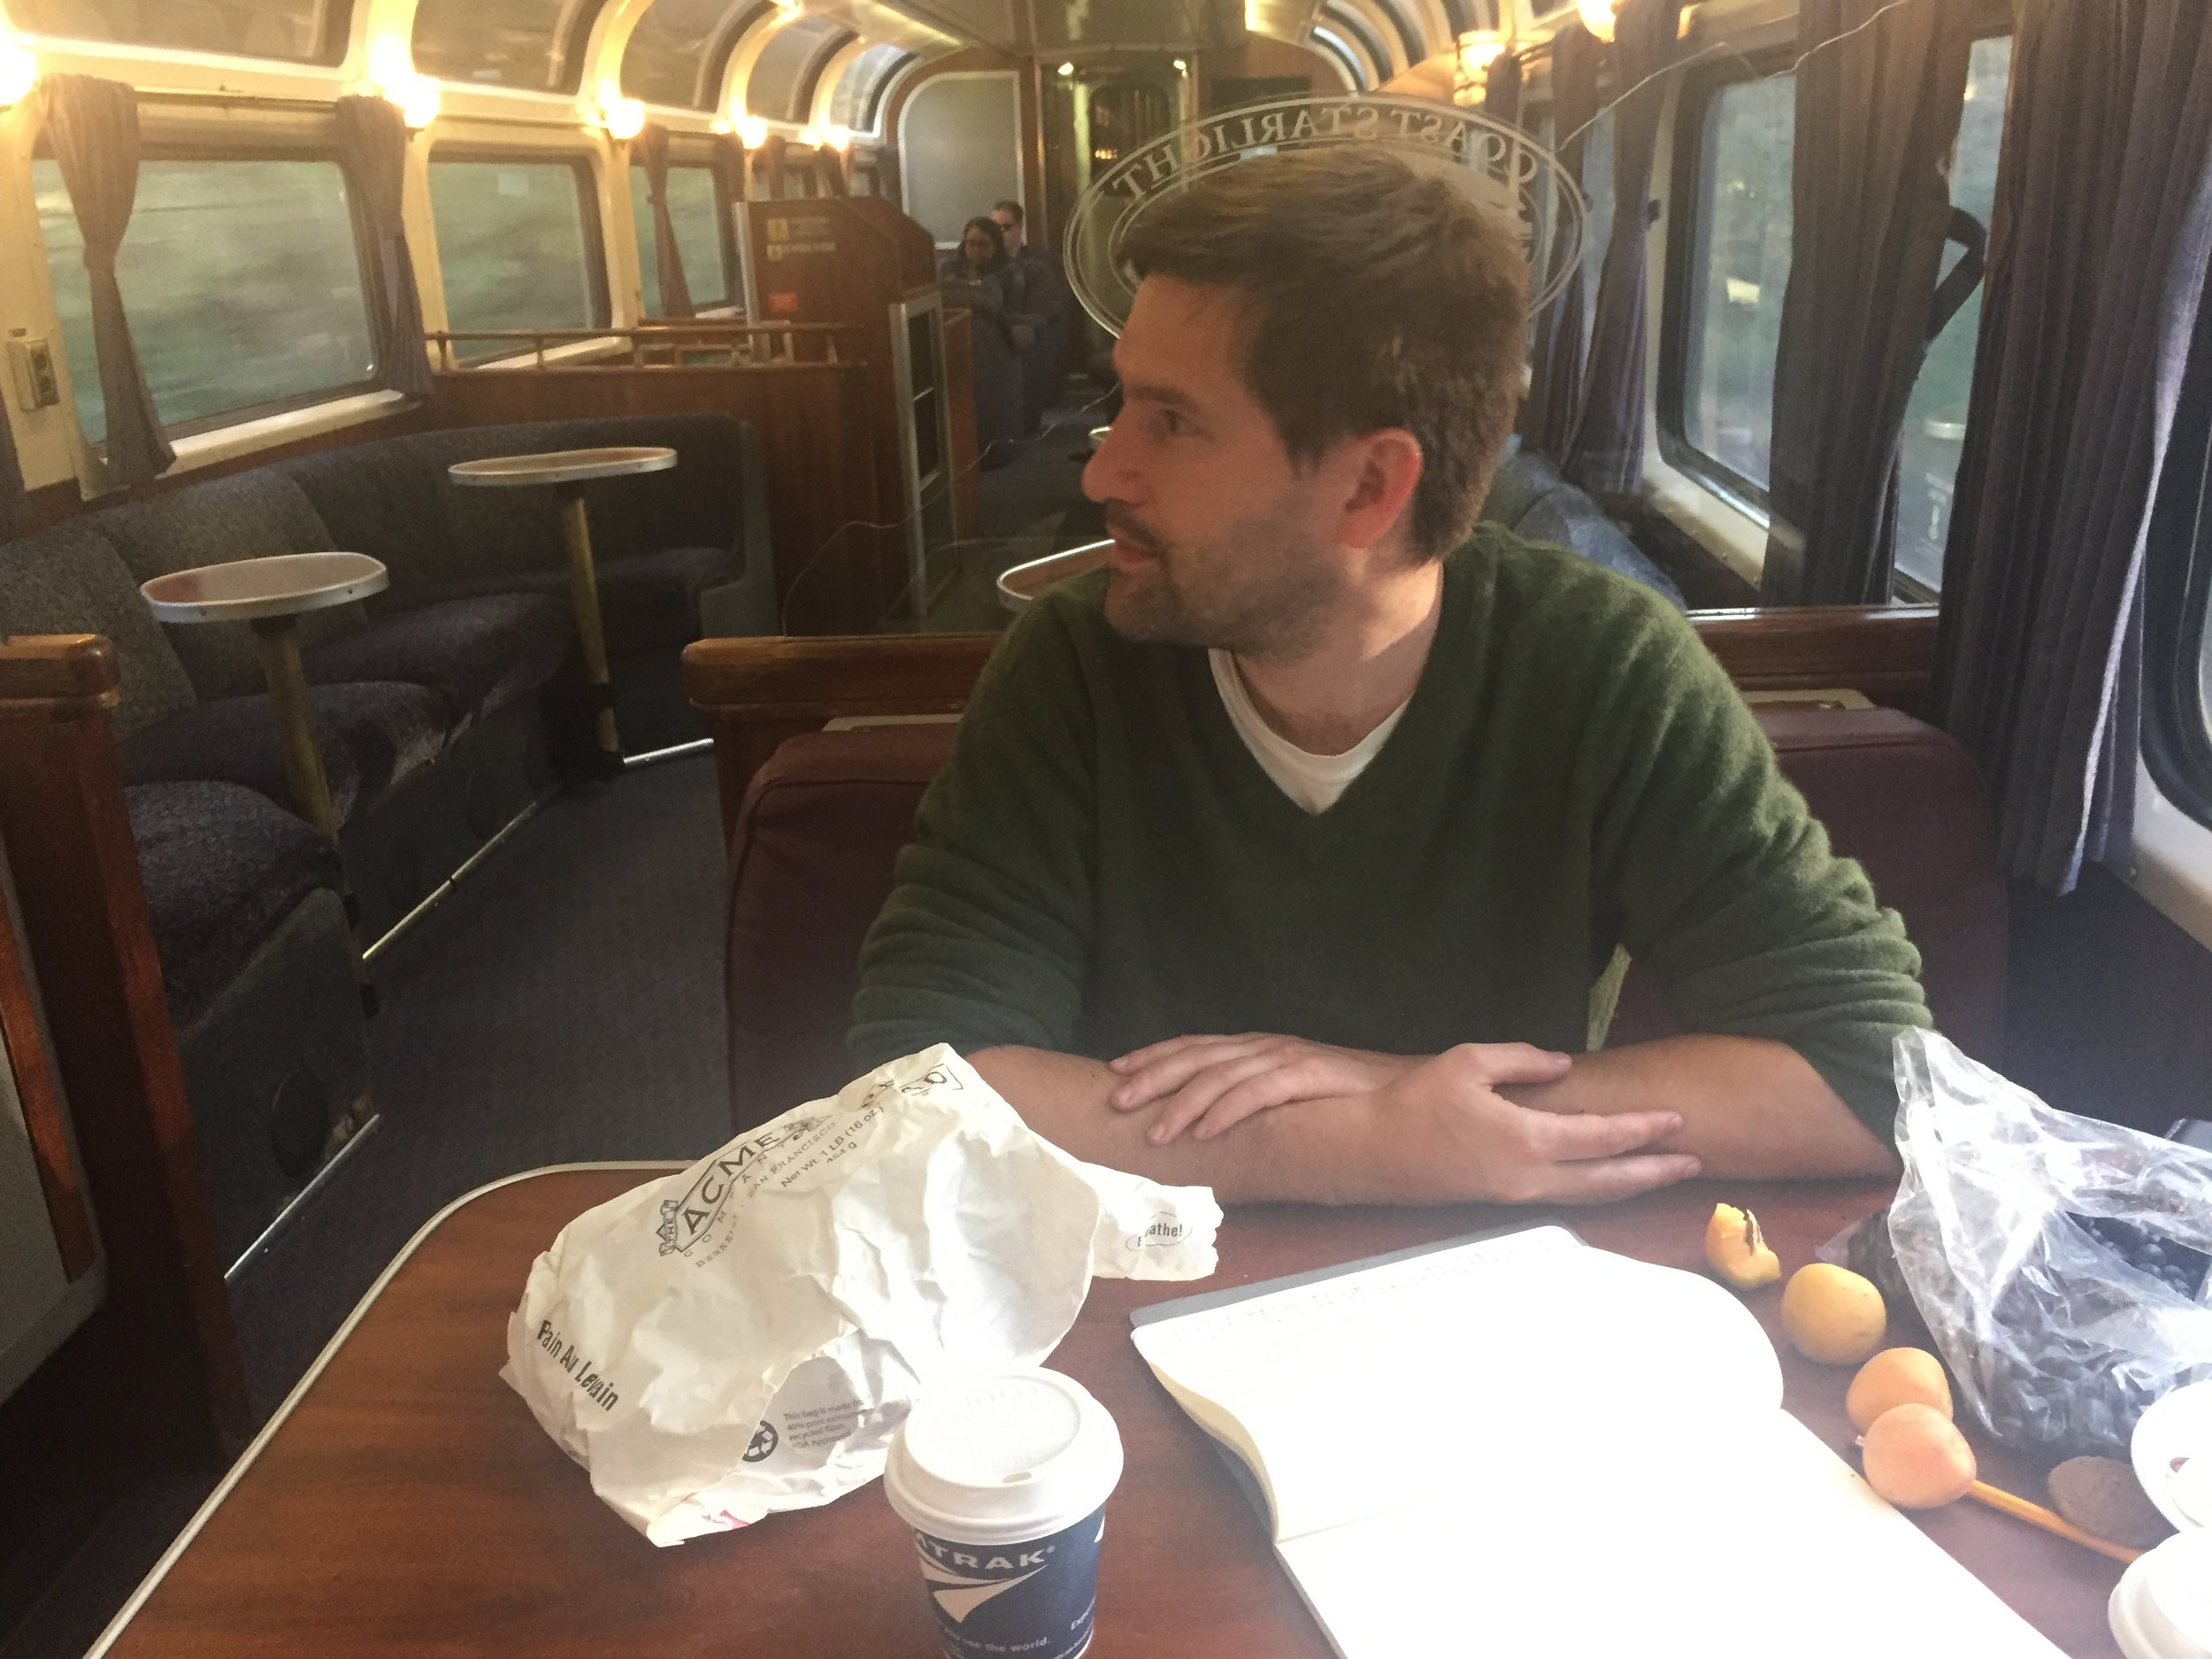 Here we are in the Amtrak parlor car, drinking FREE coffee (see below) and eating blueberries and apricots and crusty bread we brought from home.